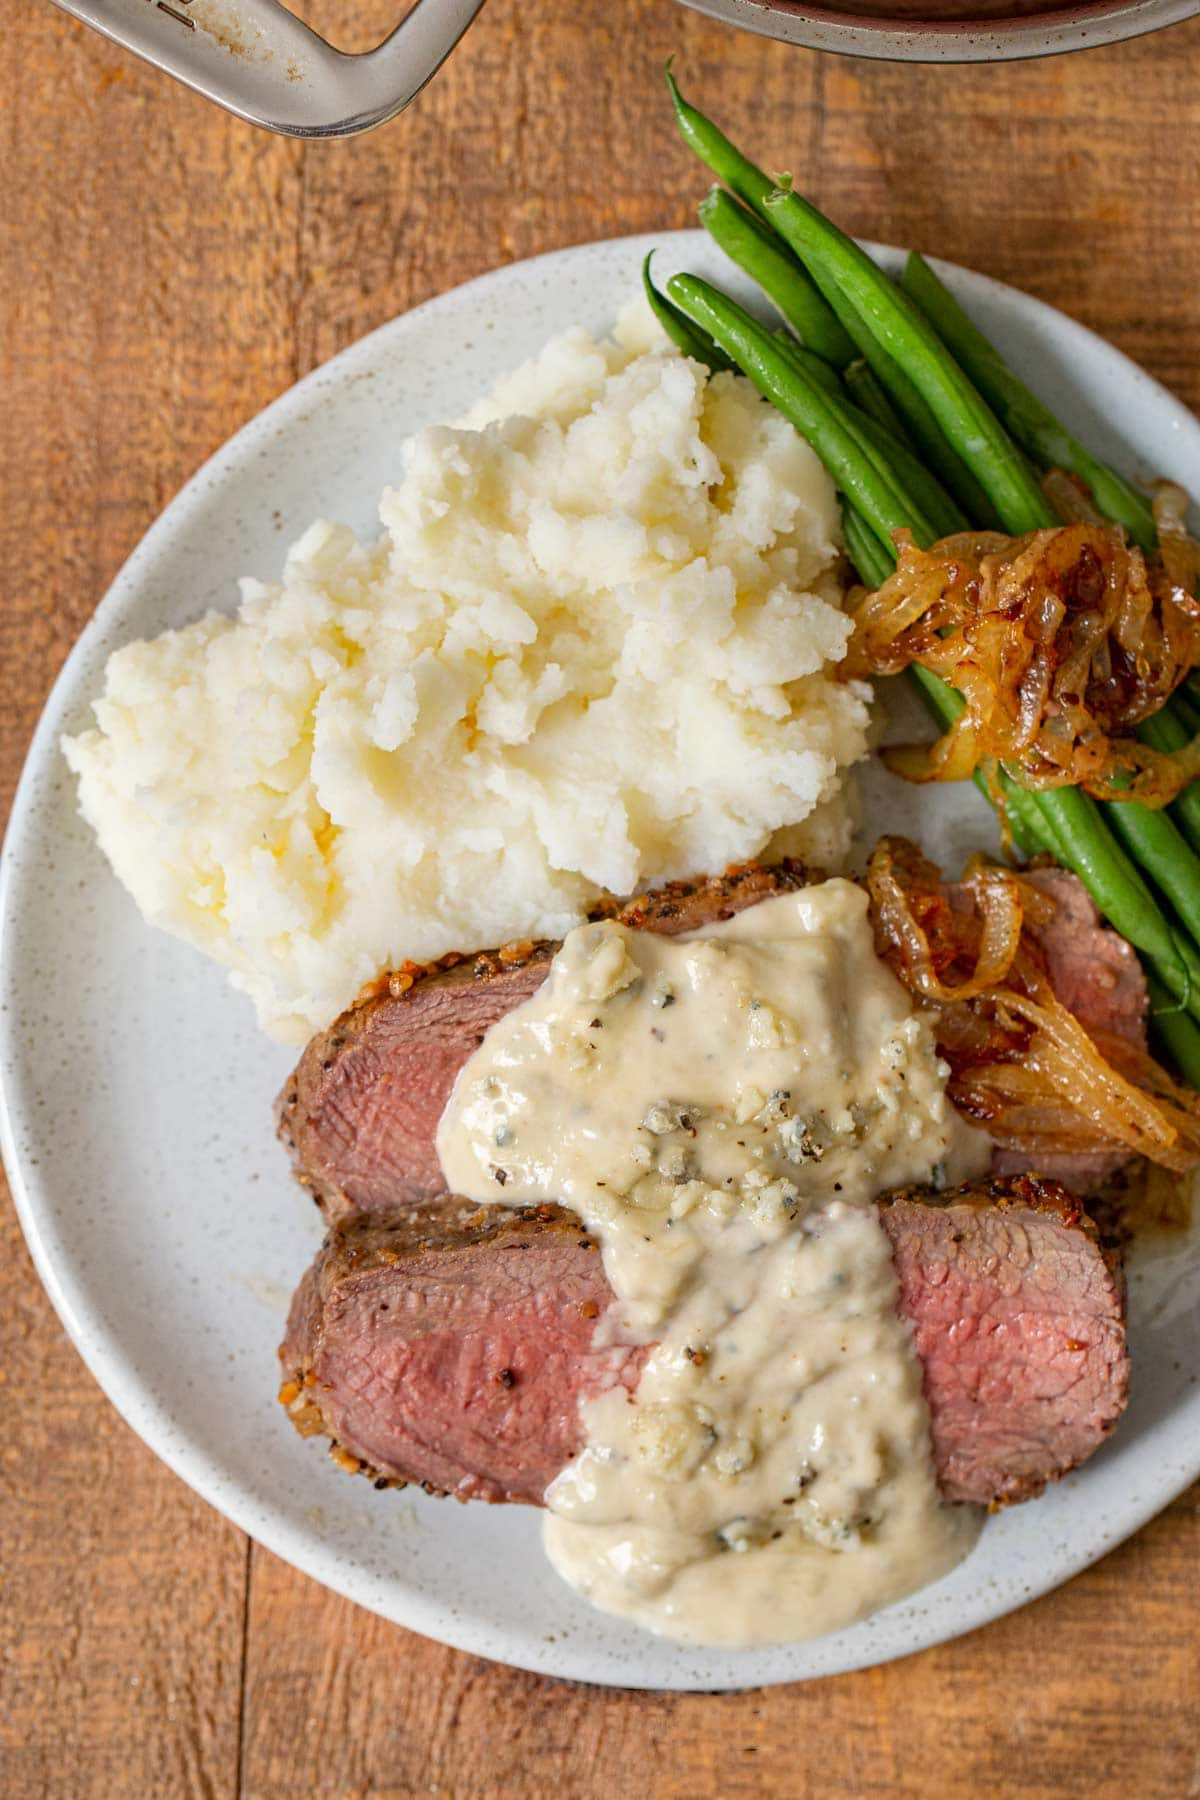 Blue Cheese Sauce over steak on plate